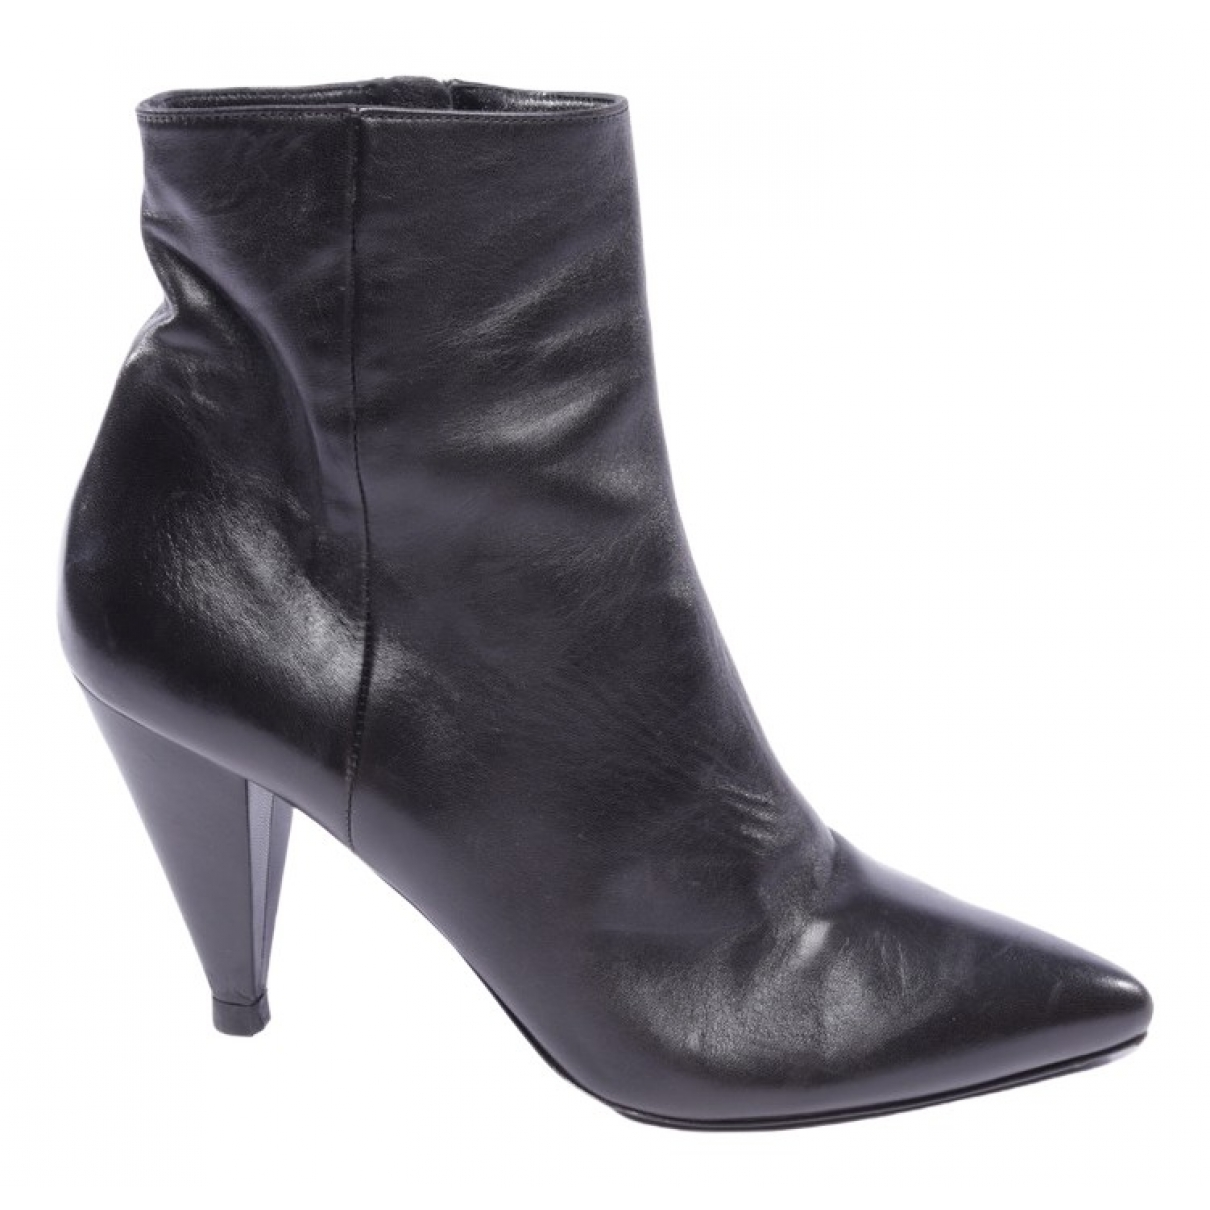 Prada \N Black Leather Ankle boots for Women 41 EU